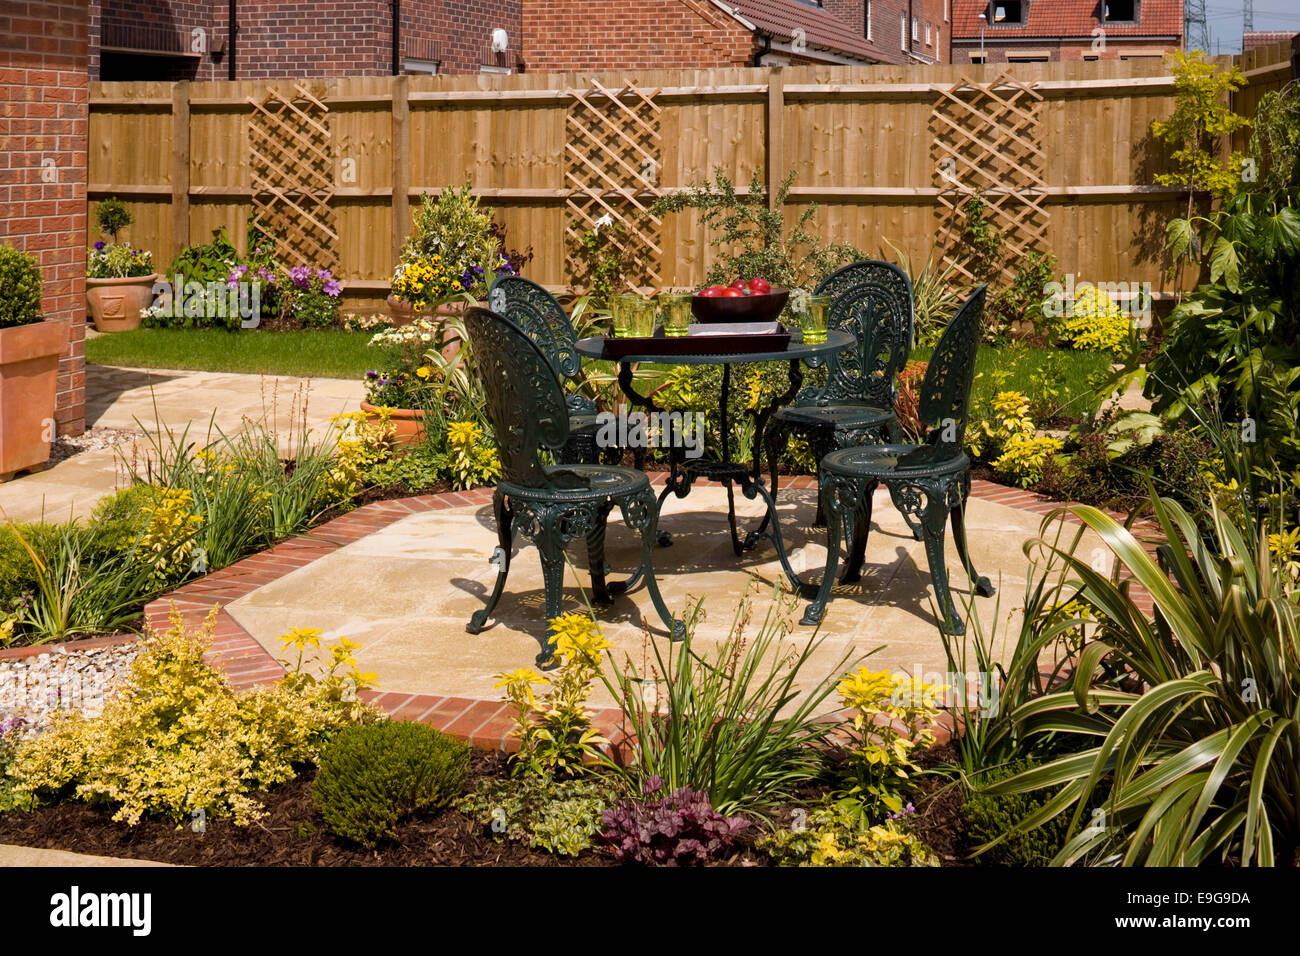 Garden furniture in Mews Style Houses, Misterton and Retford, Nottinghamshire, UK Stock Photo